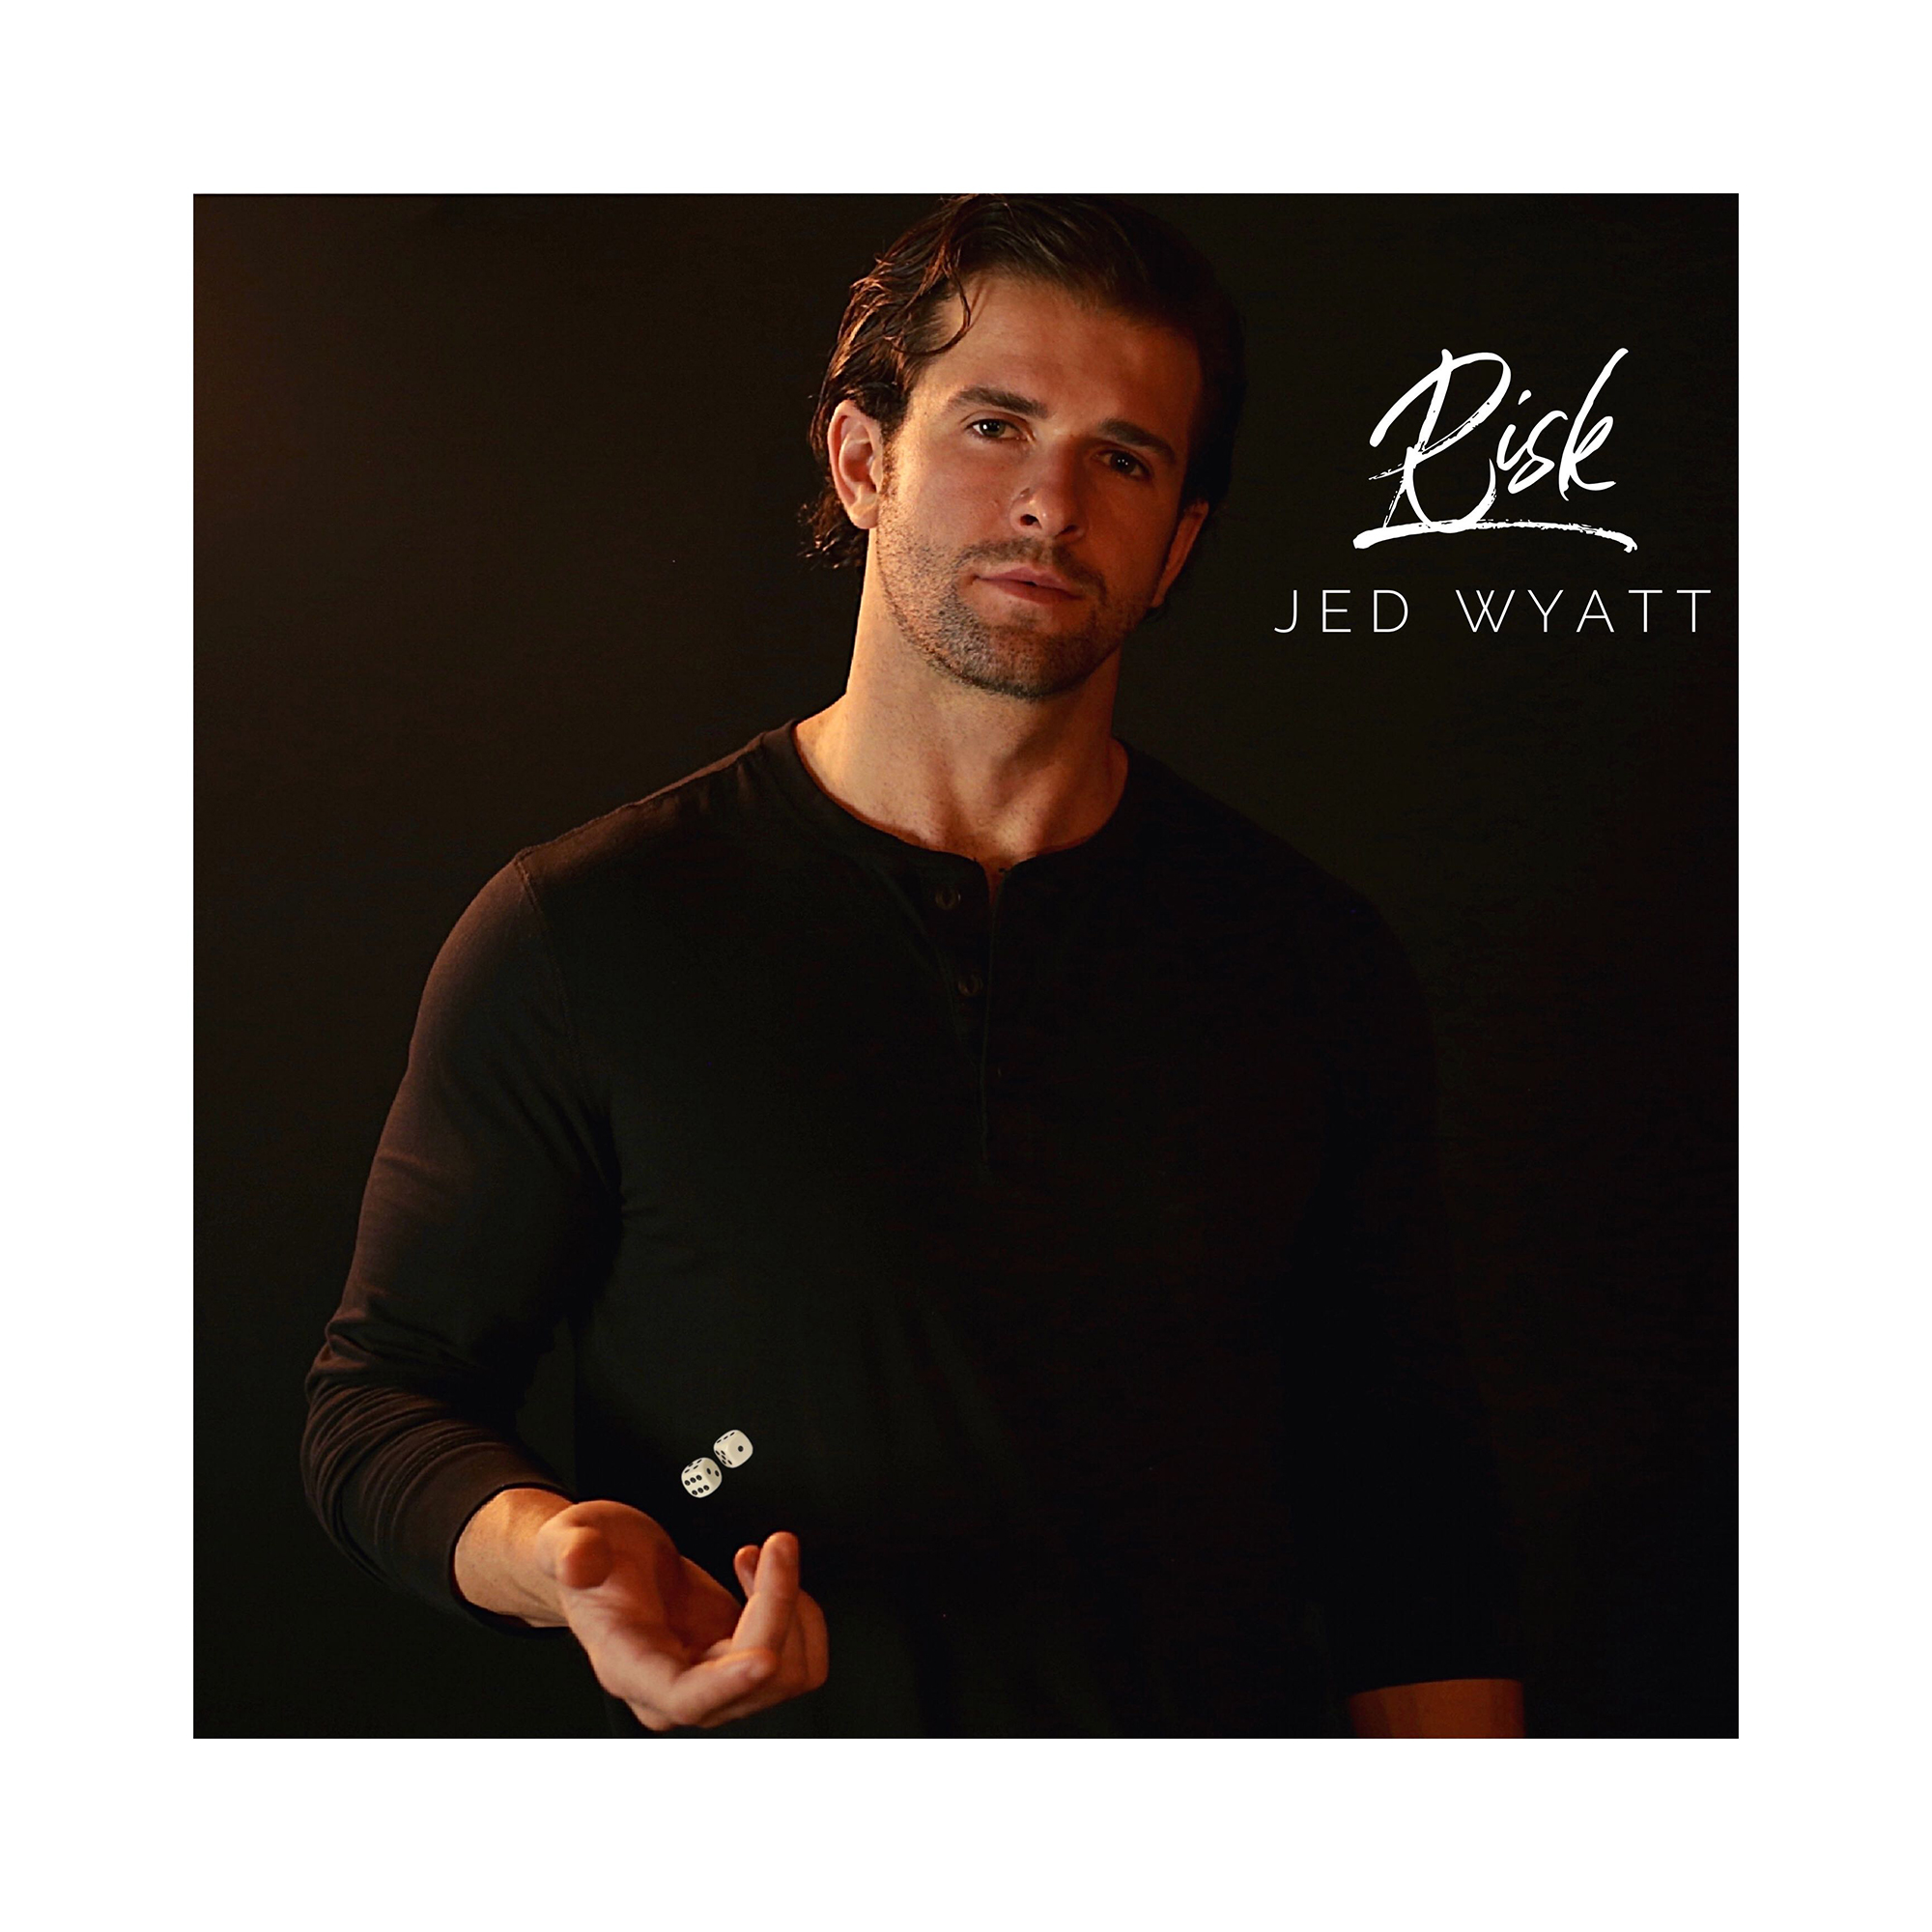 The Bachelorette's Jed Wyatt Drops New Single 'Risk' About Taking 'a Chance on Someone'